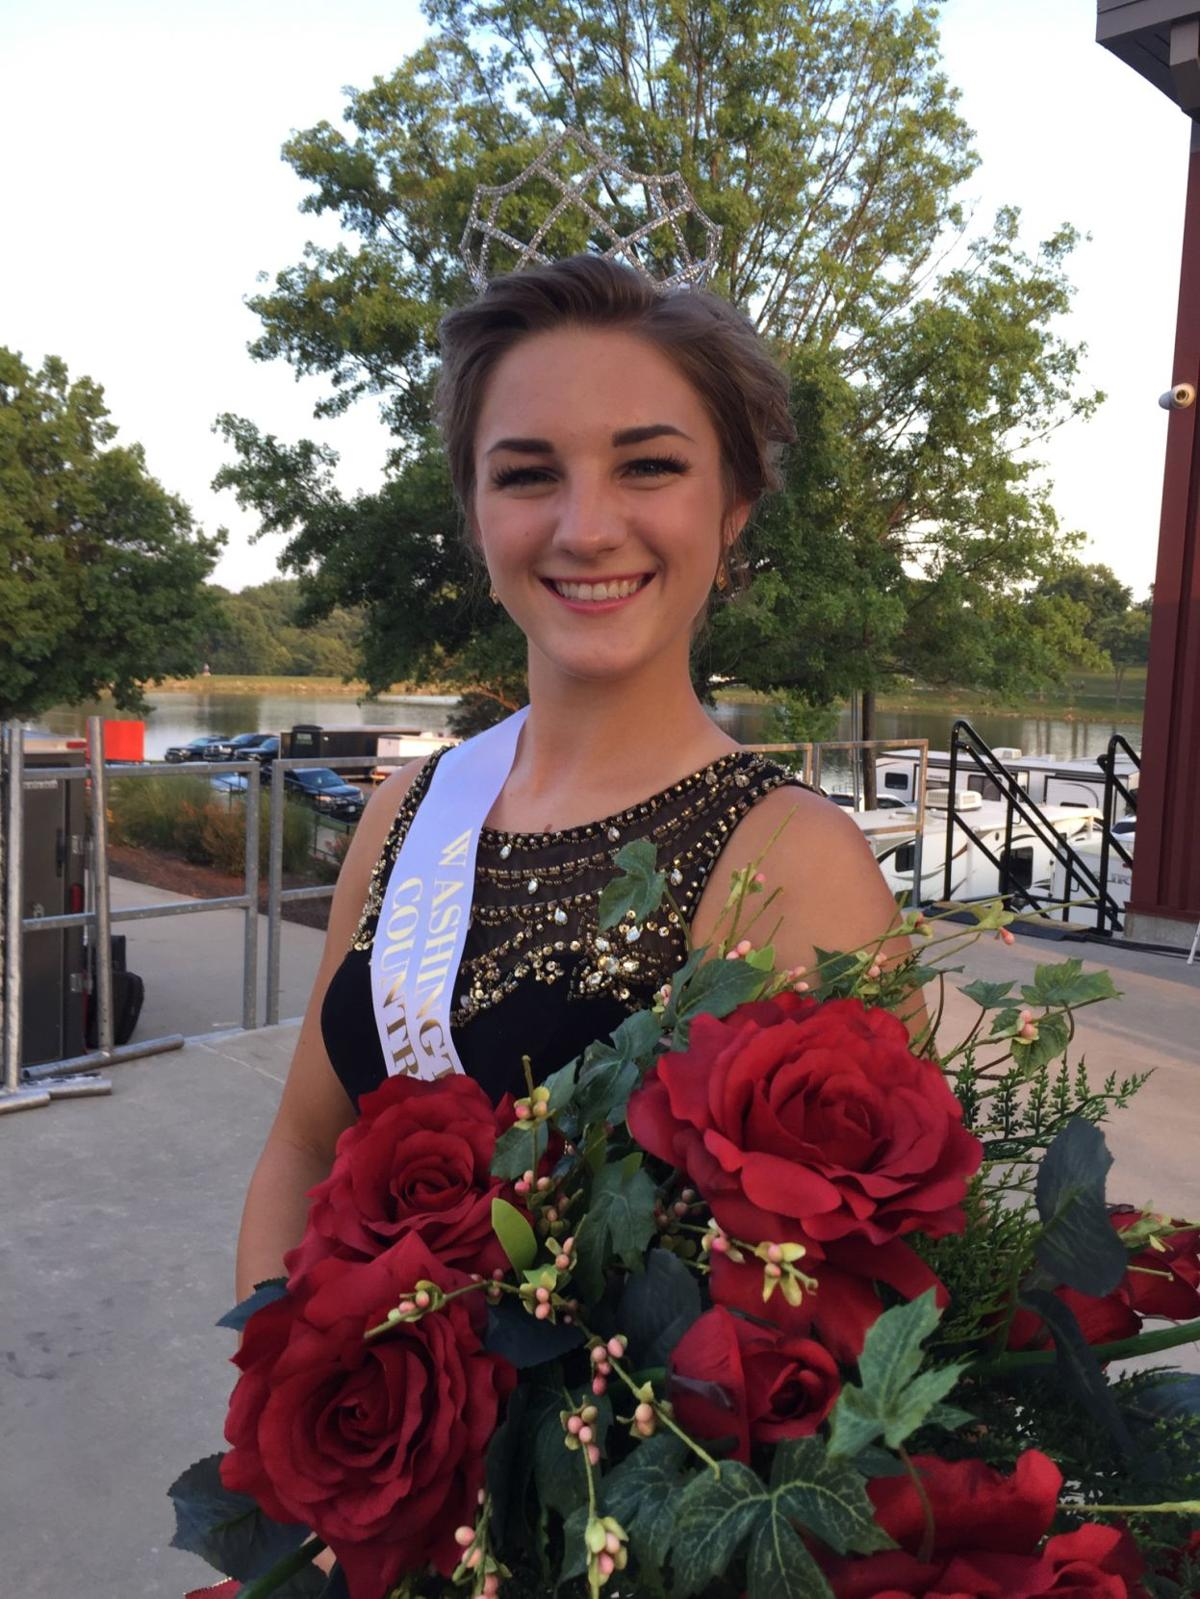 Ruether Named 2017 Town and Country Fair Queen